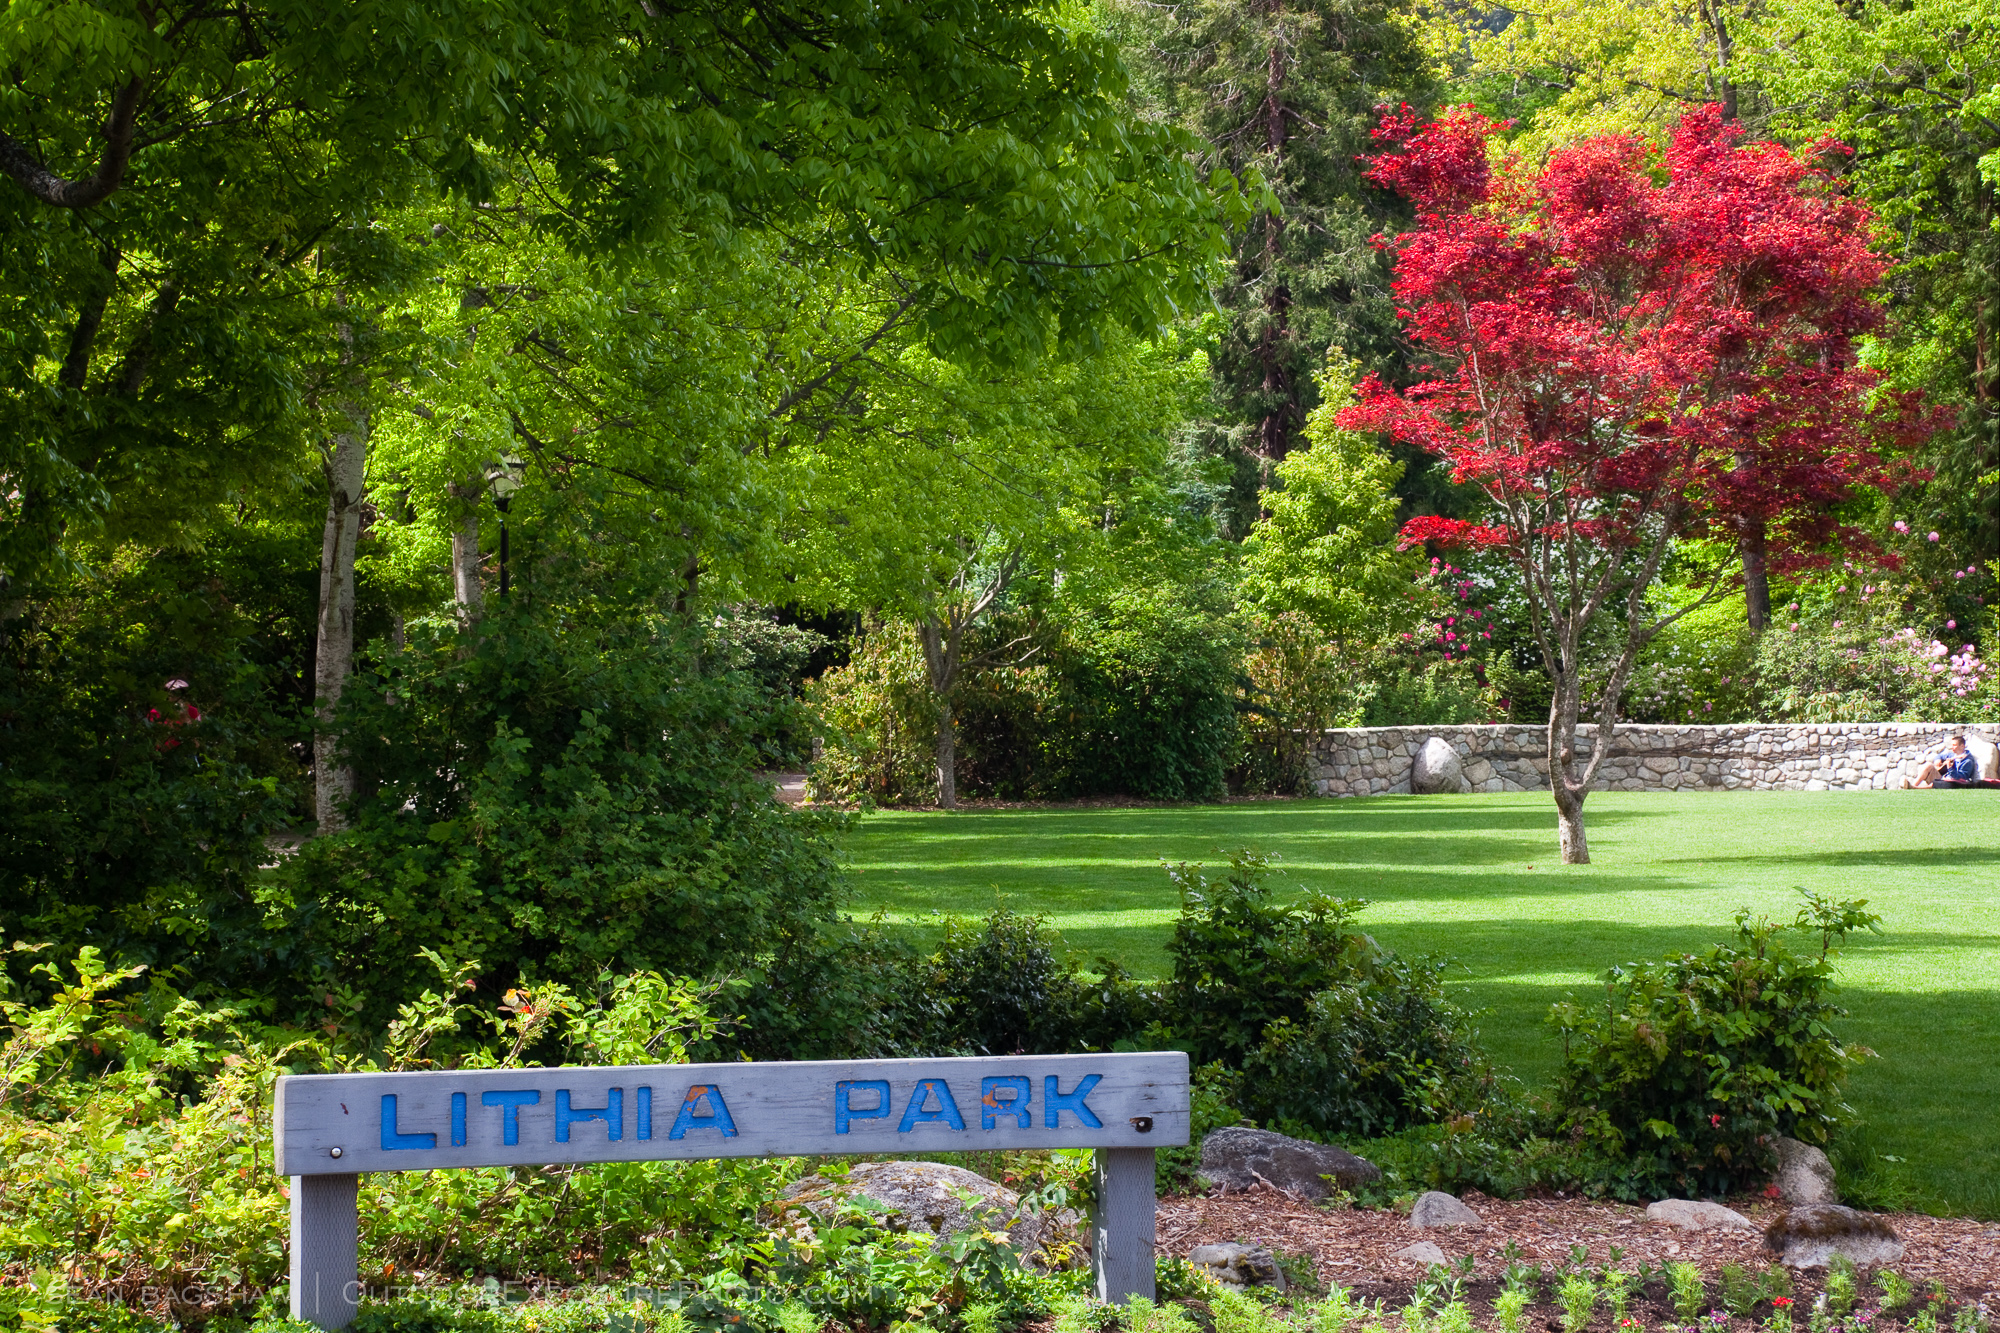 AWARD WINNING LITHIA PARK IS A SHORT DRIVE AWAY